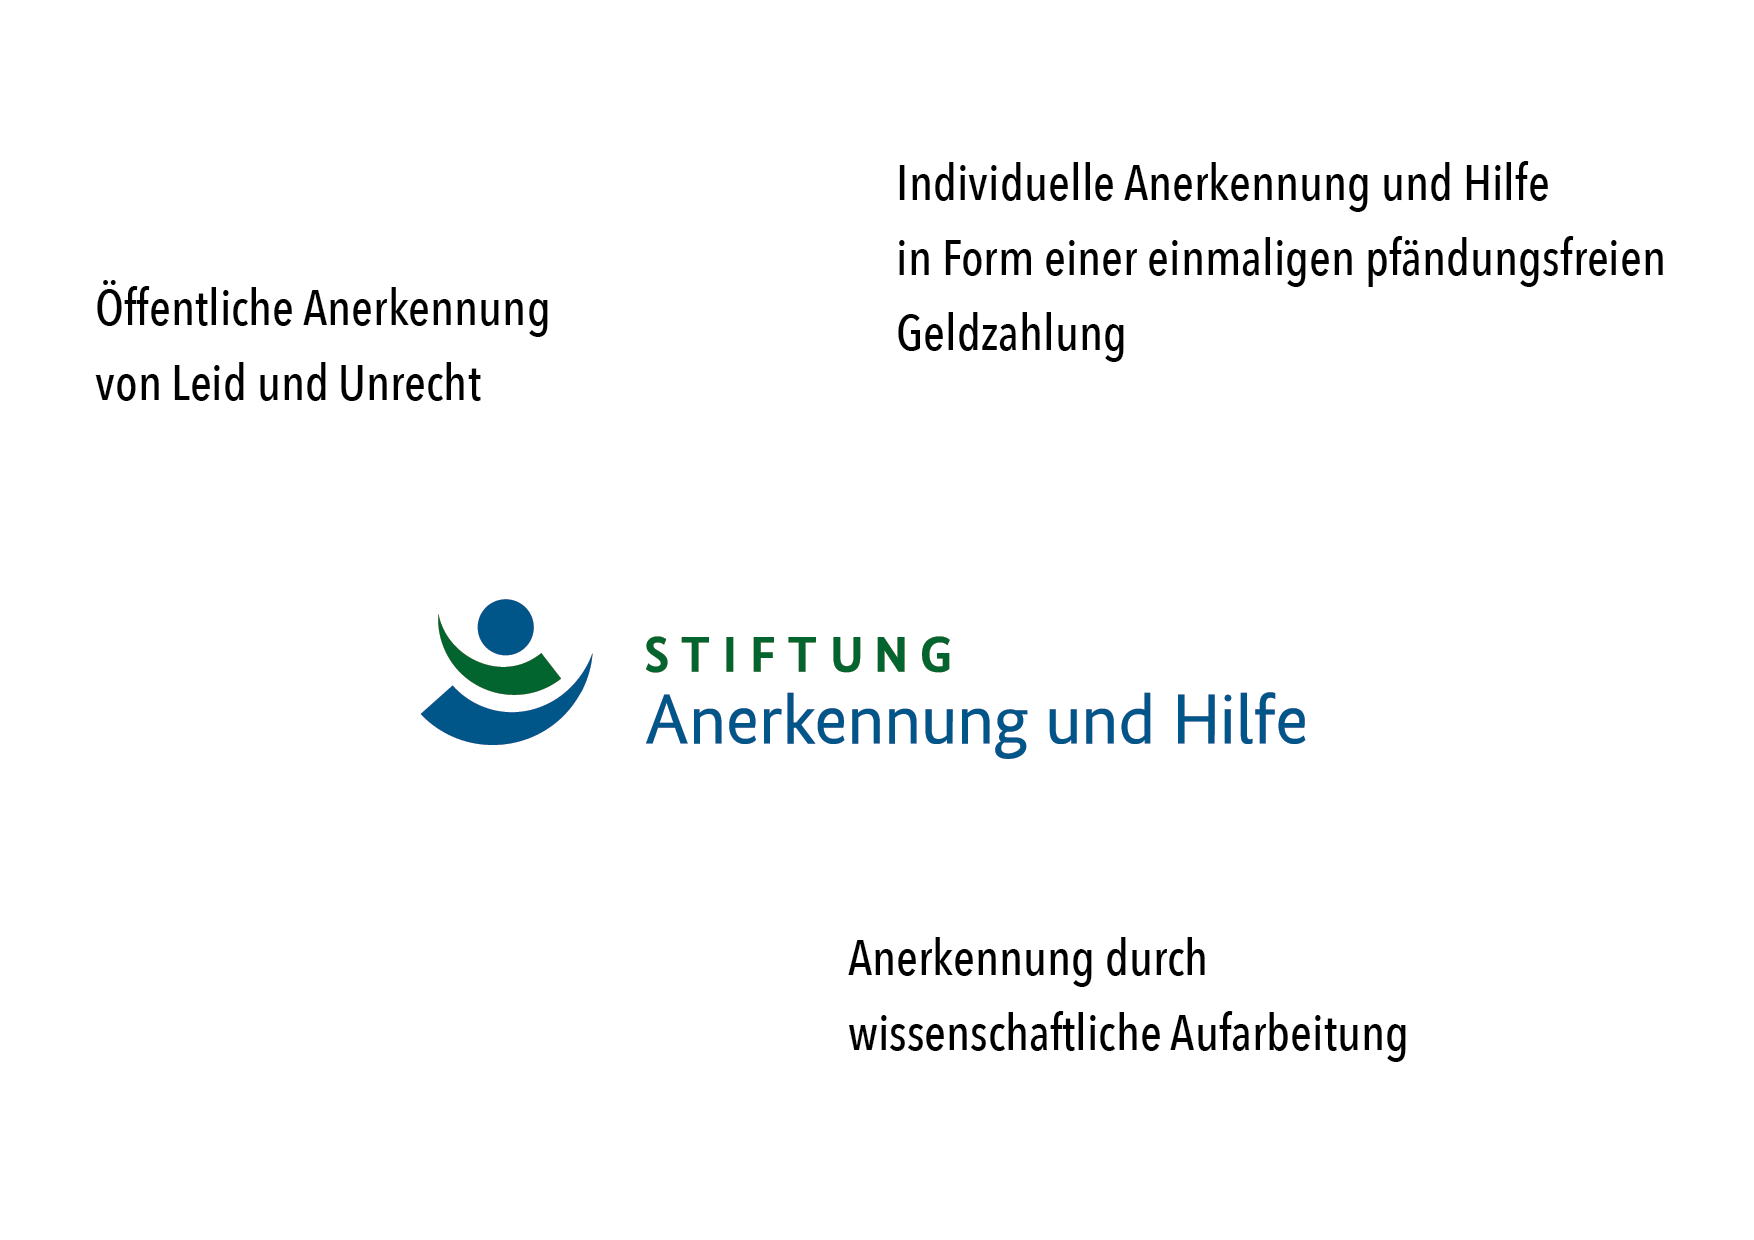 T13_1_Stiftung.png